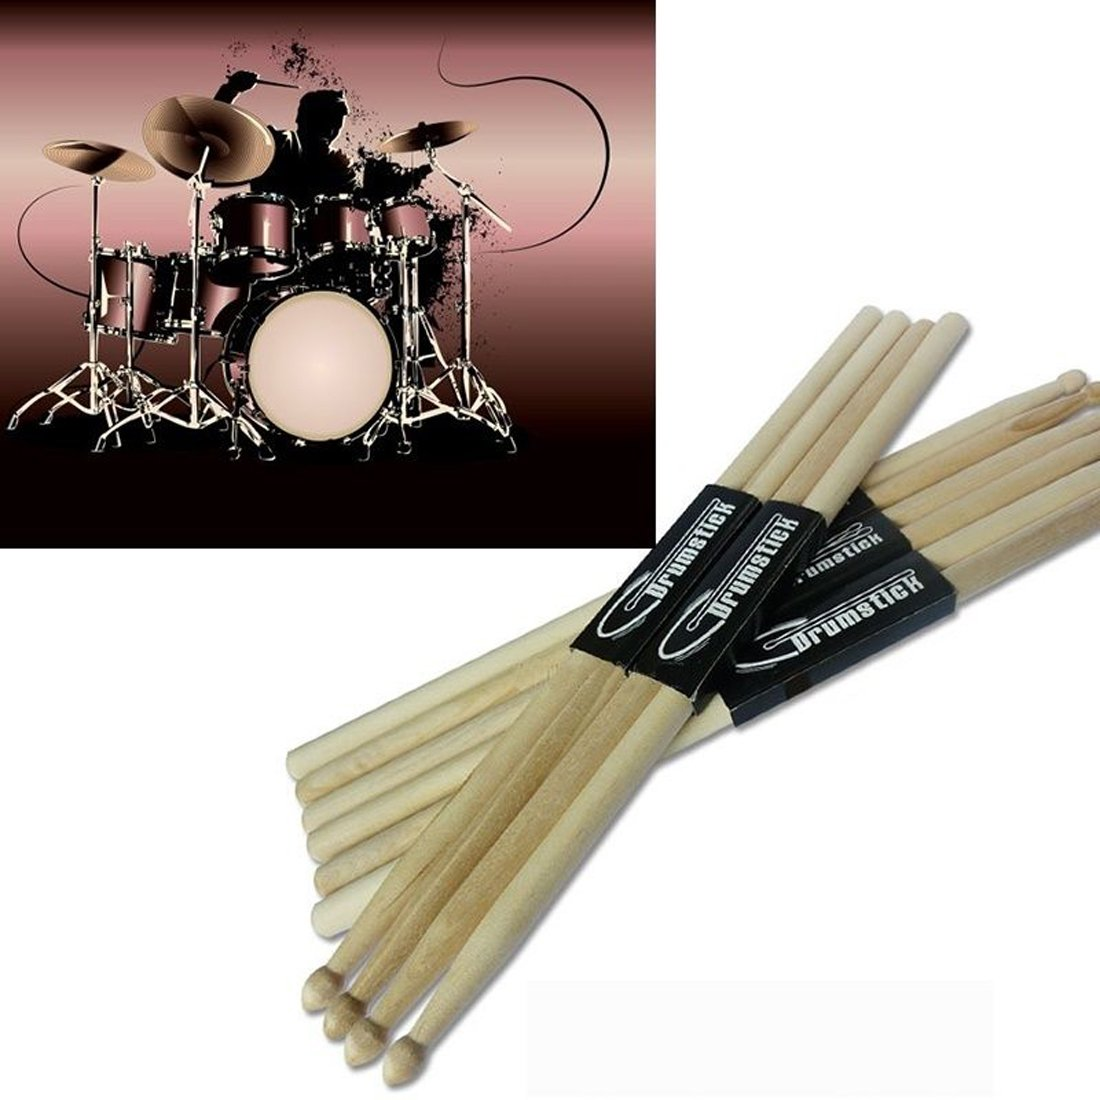 American Classic 7A Wood Drum Sticks, Jacksuper Music Band Maple Wood Drumsticks